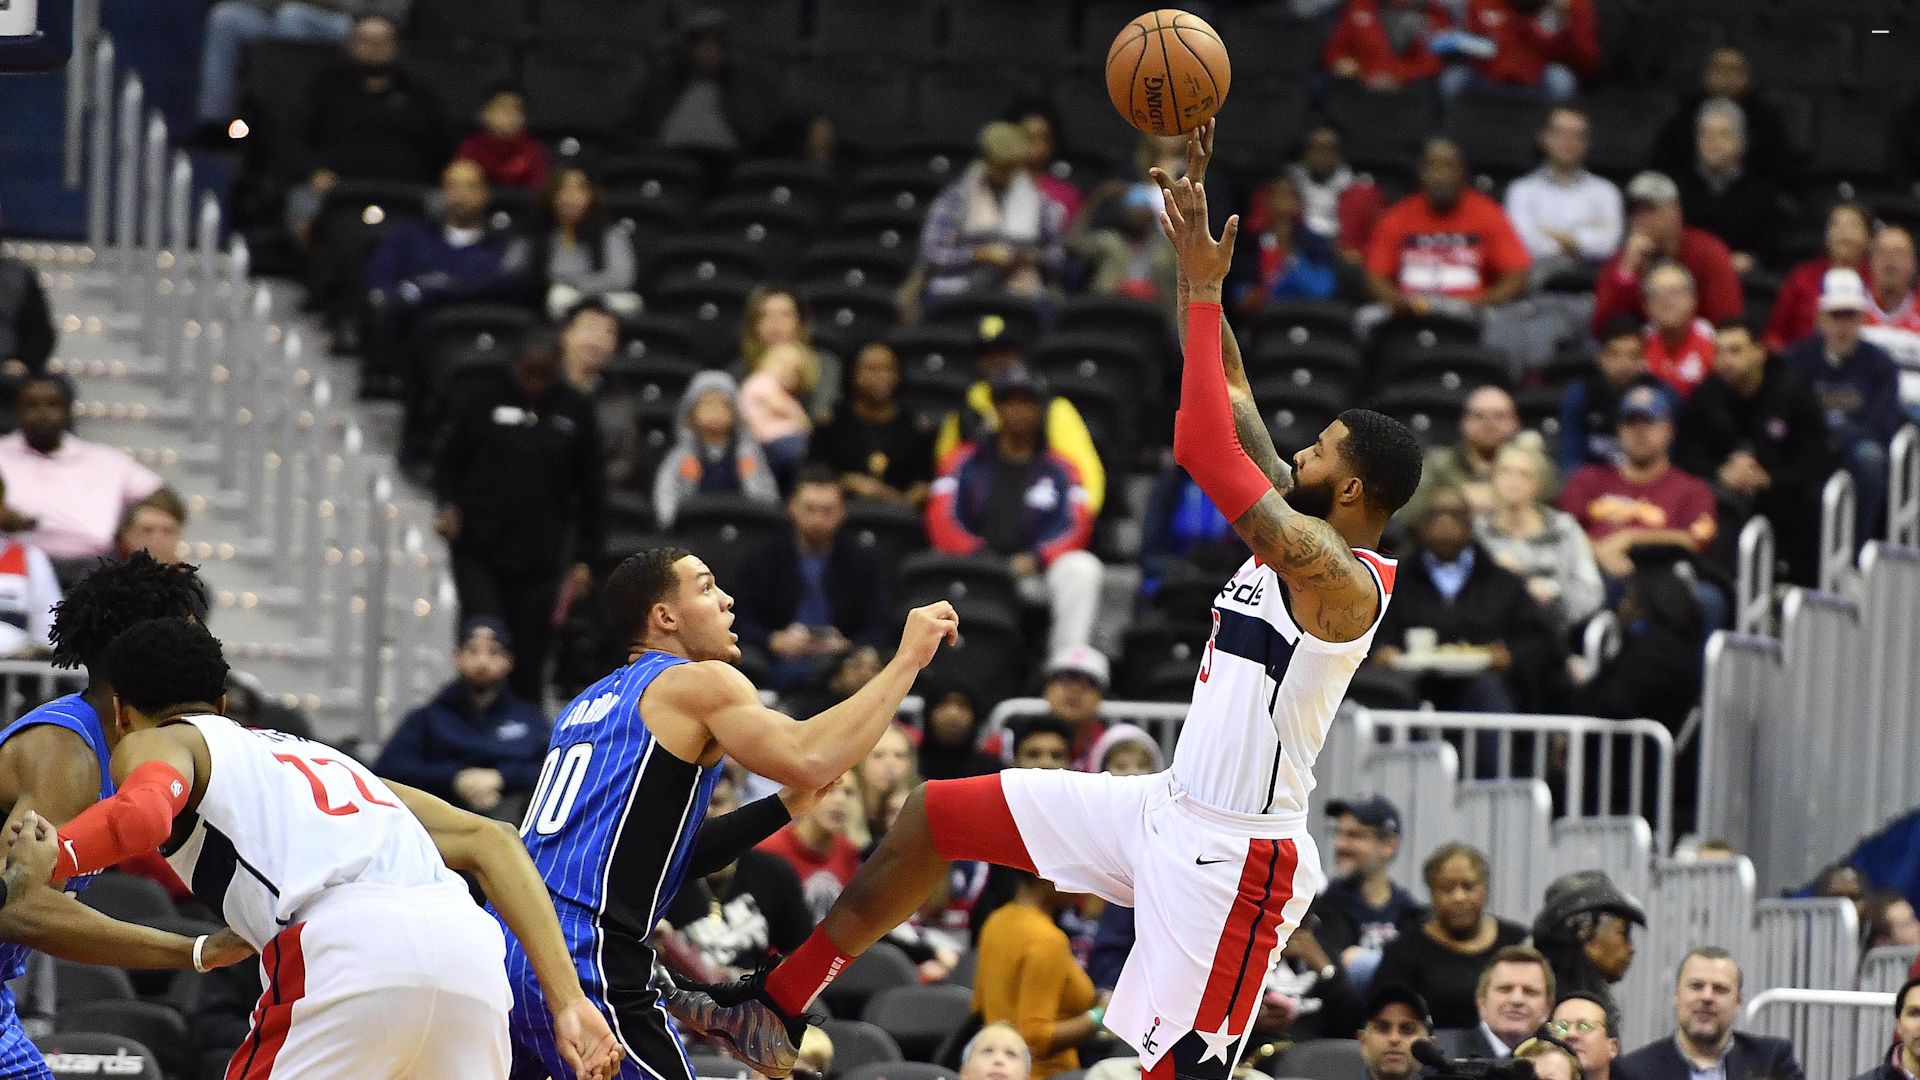 REWIND: Washington Wizards topple Orlando Magic for second win in a row